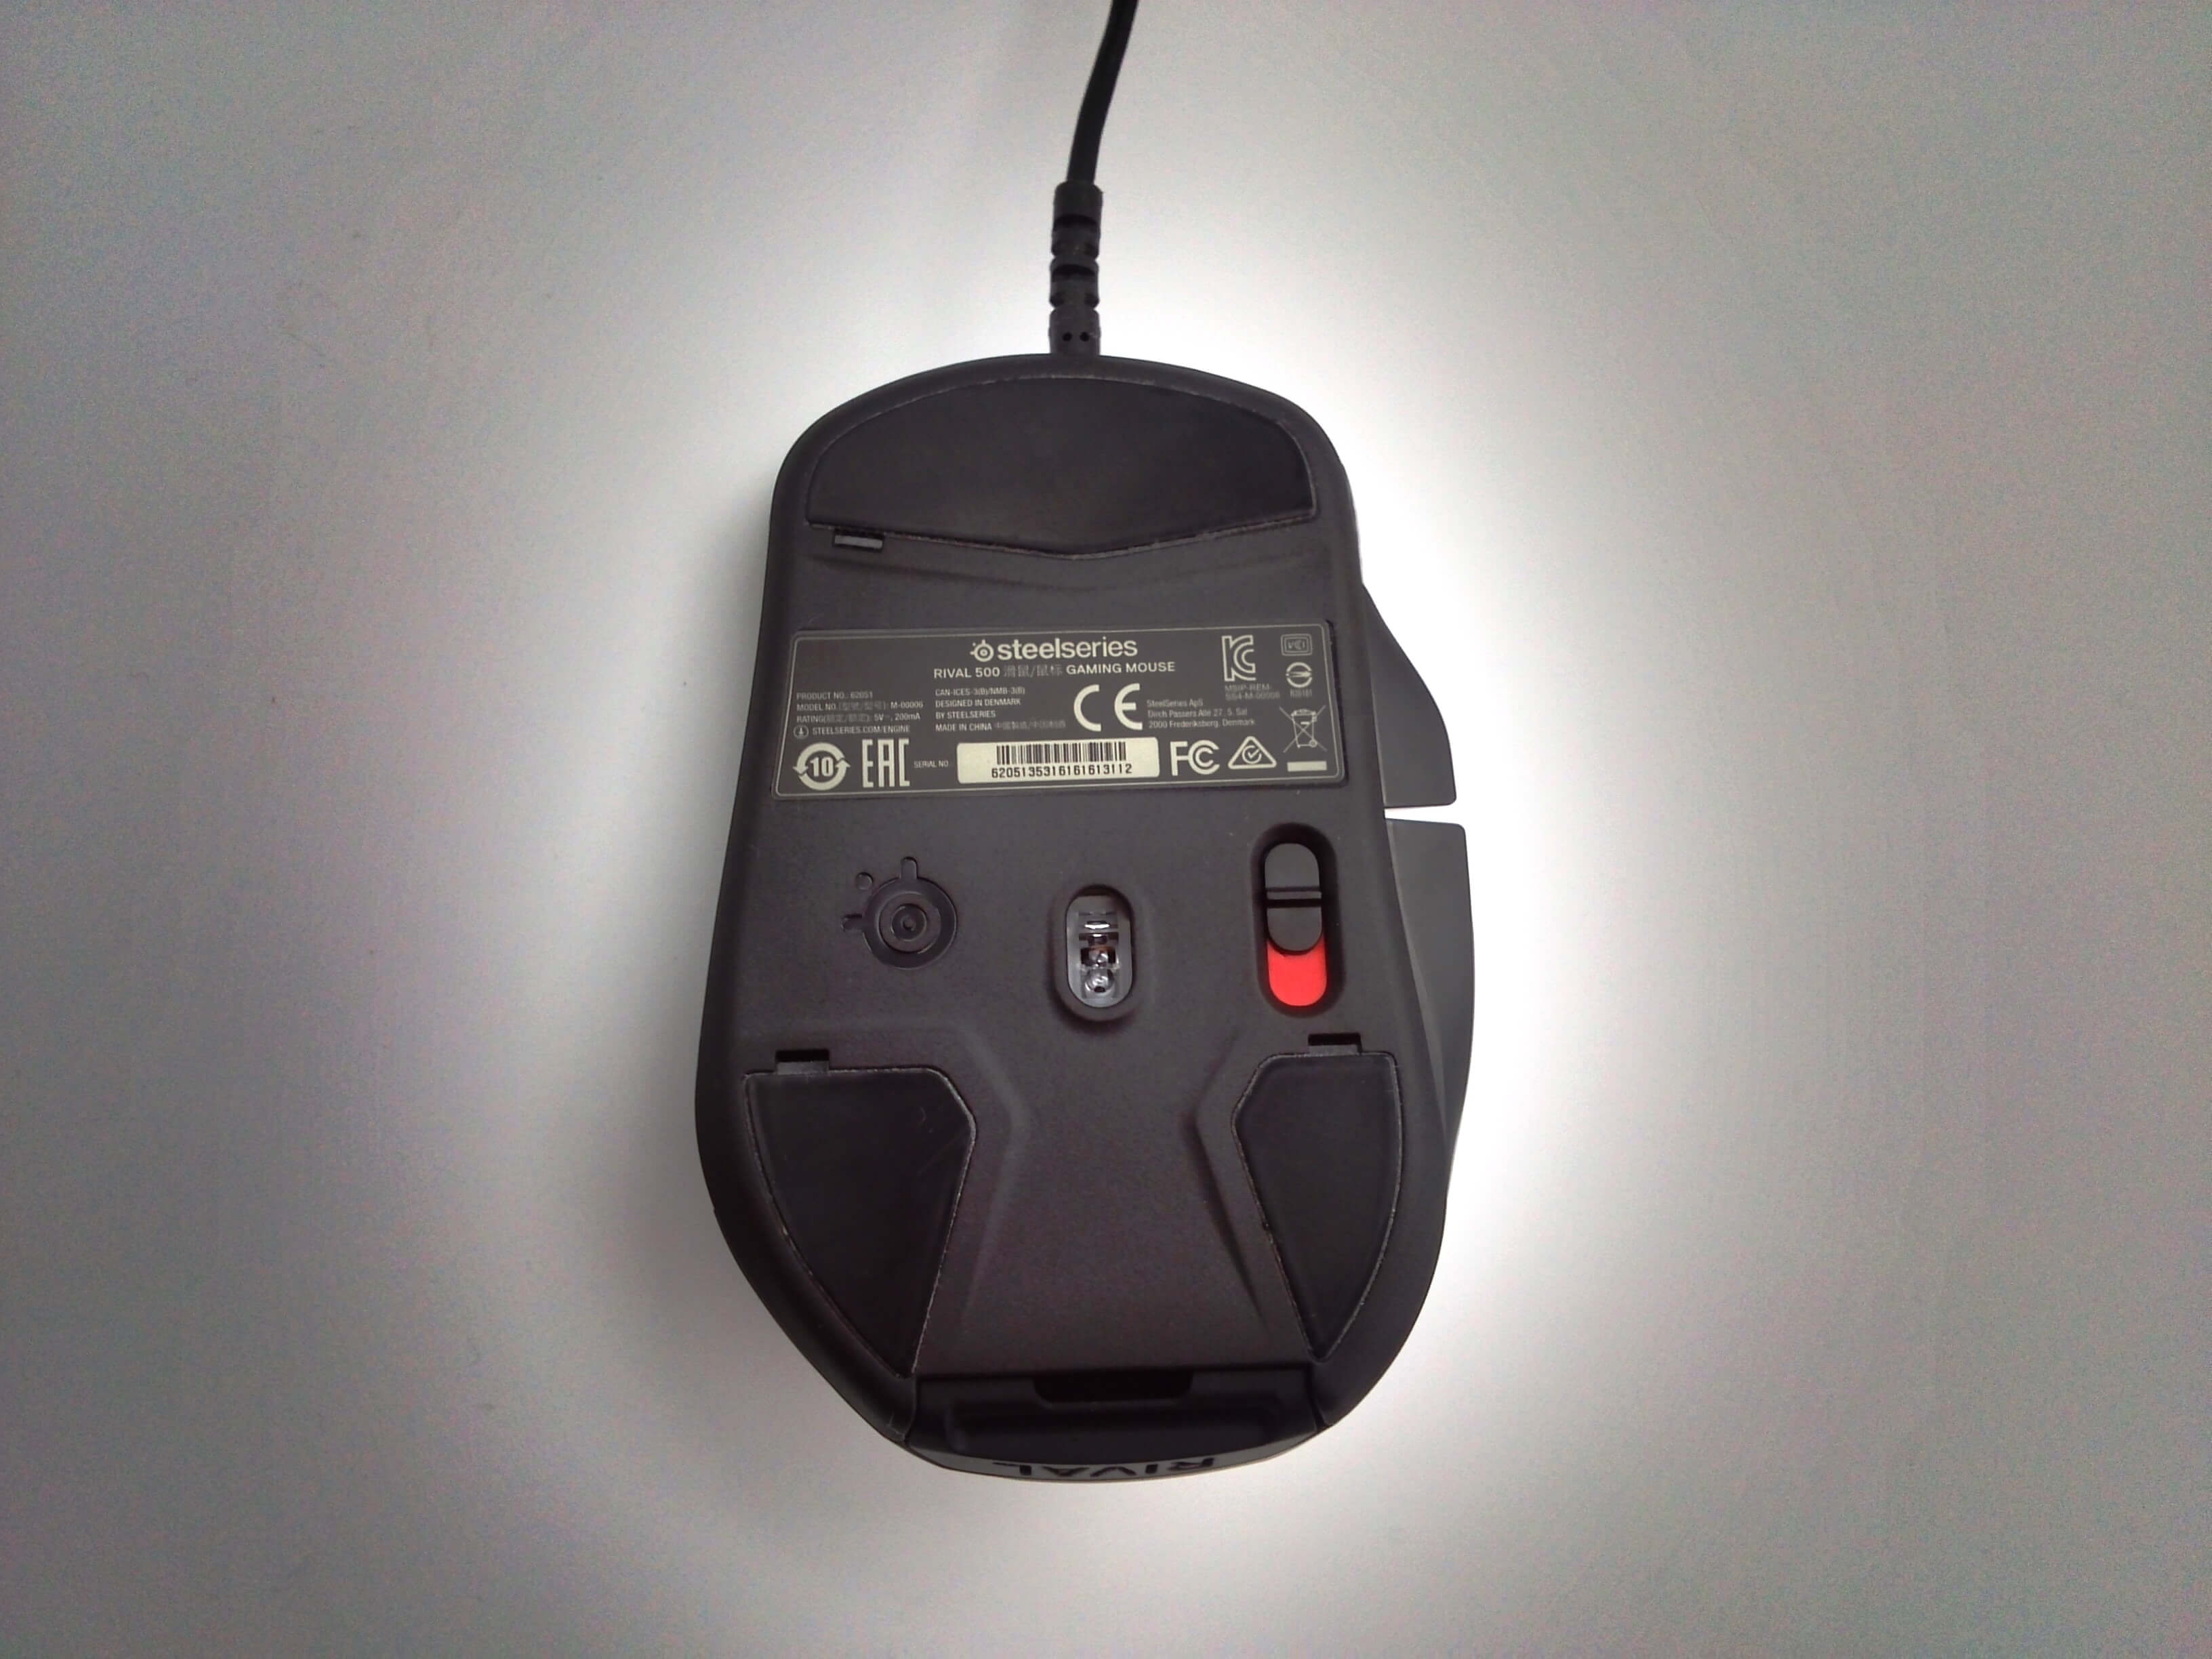 Rival 500 снизу